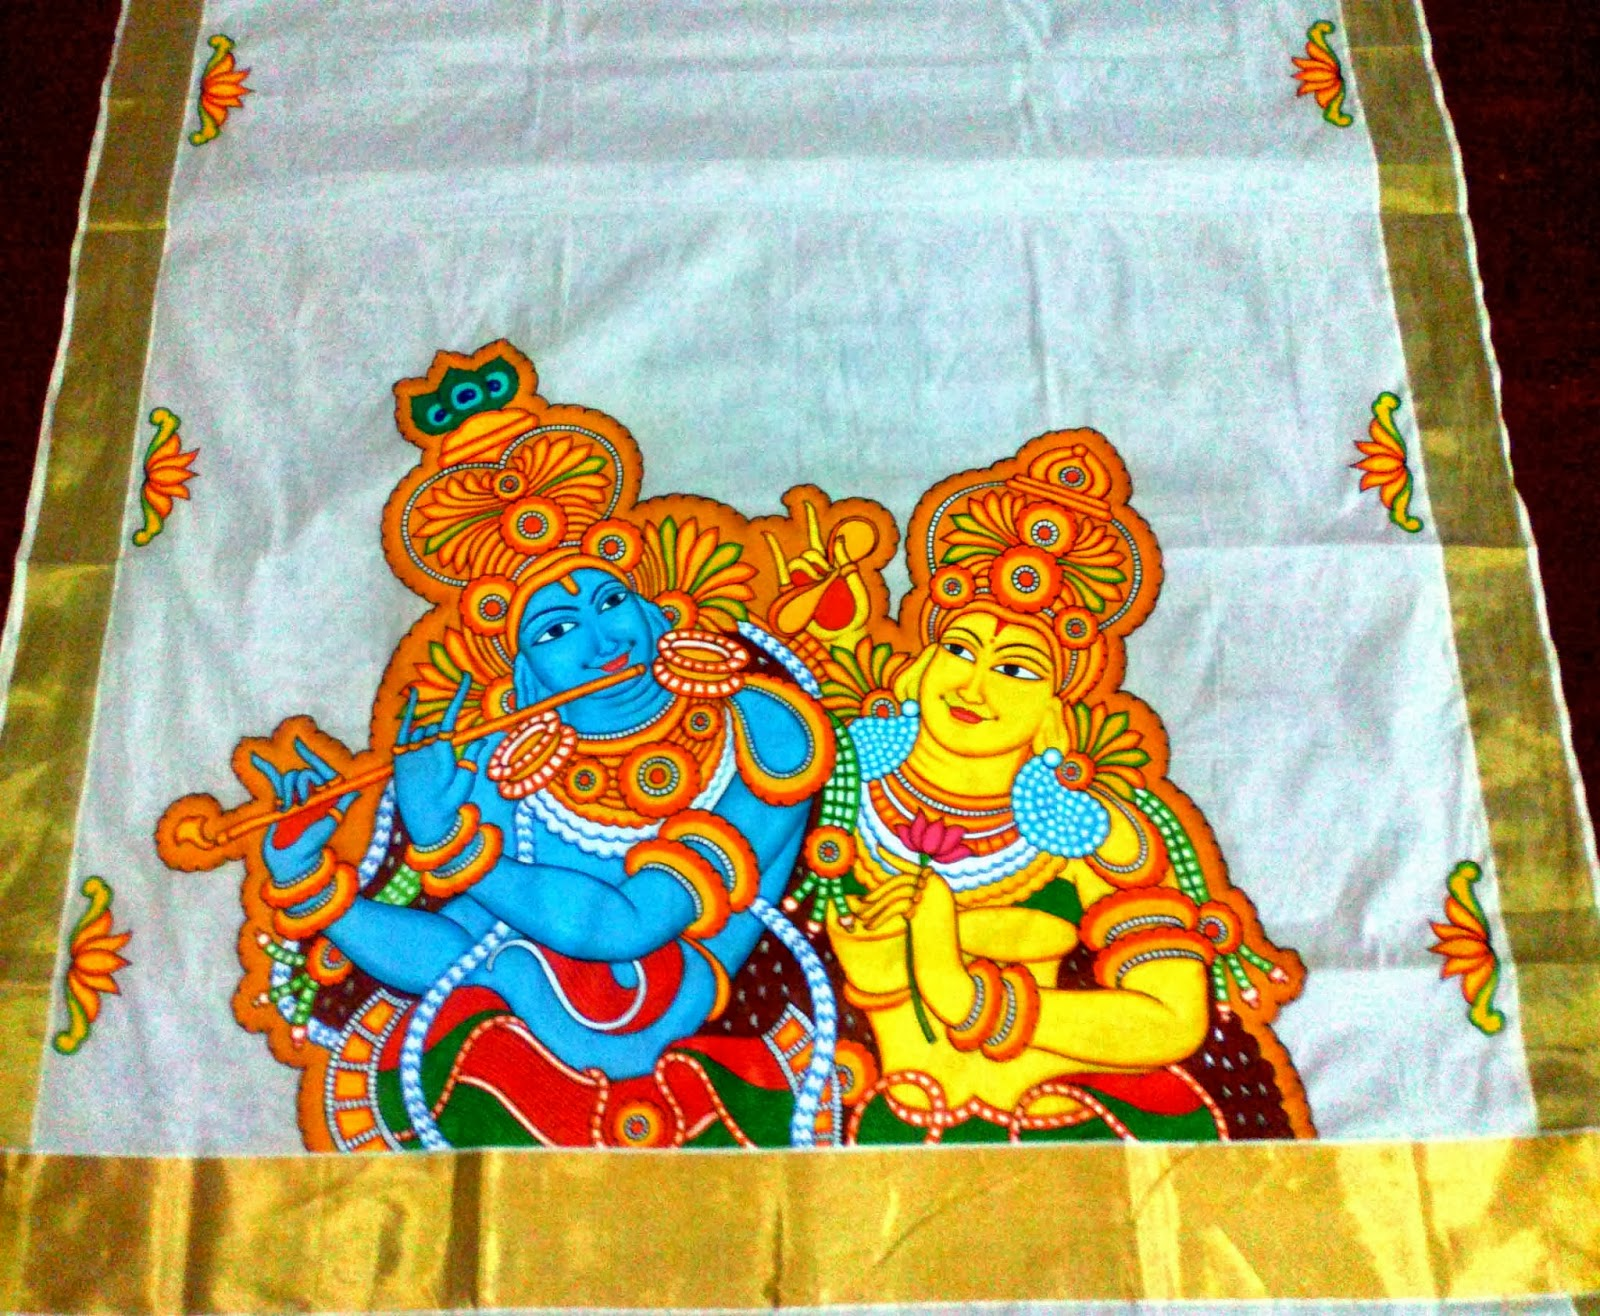 Varnachithra sarees mural for Mural painting designs